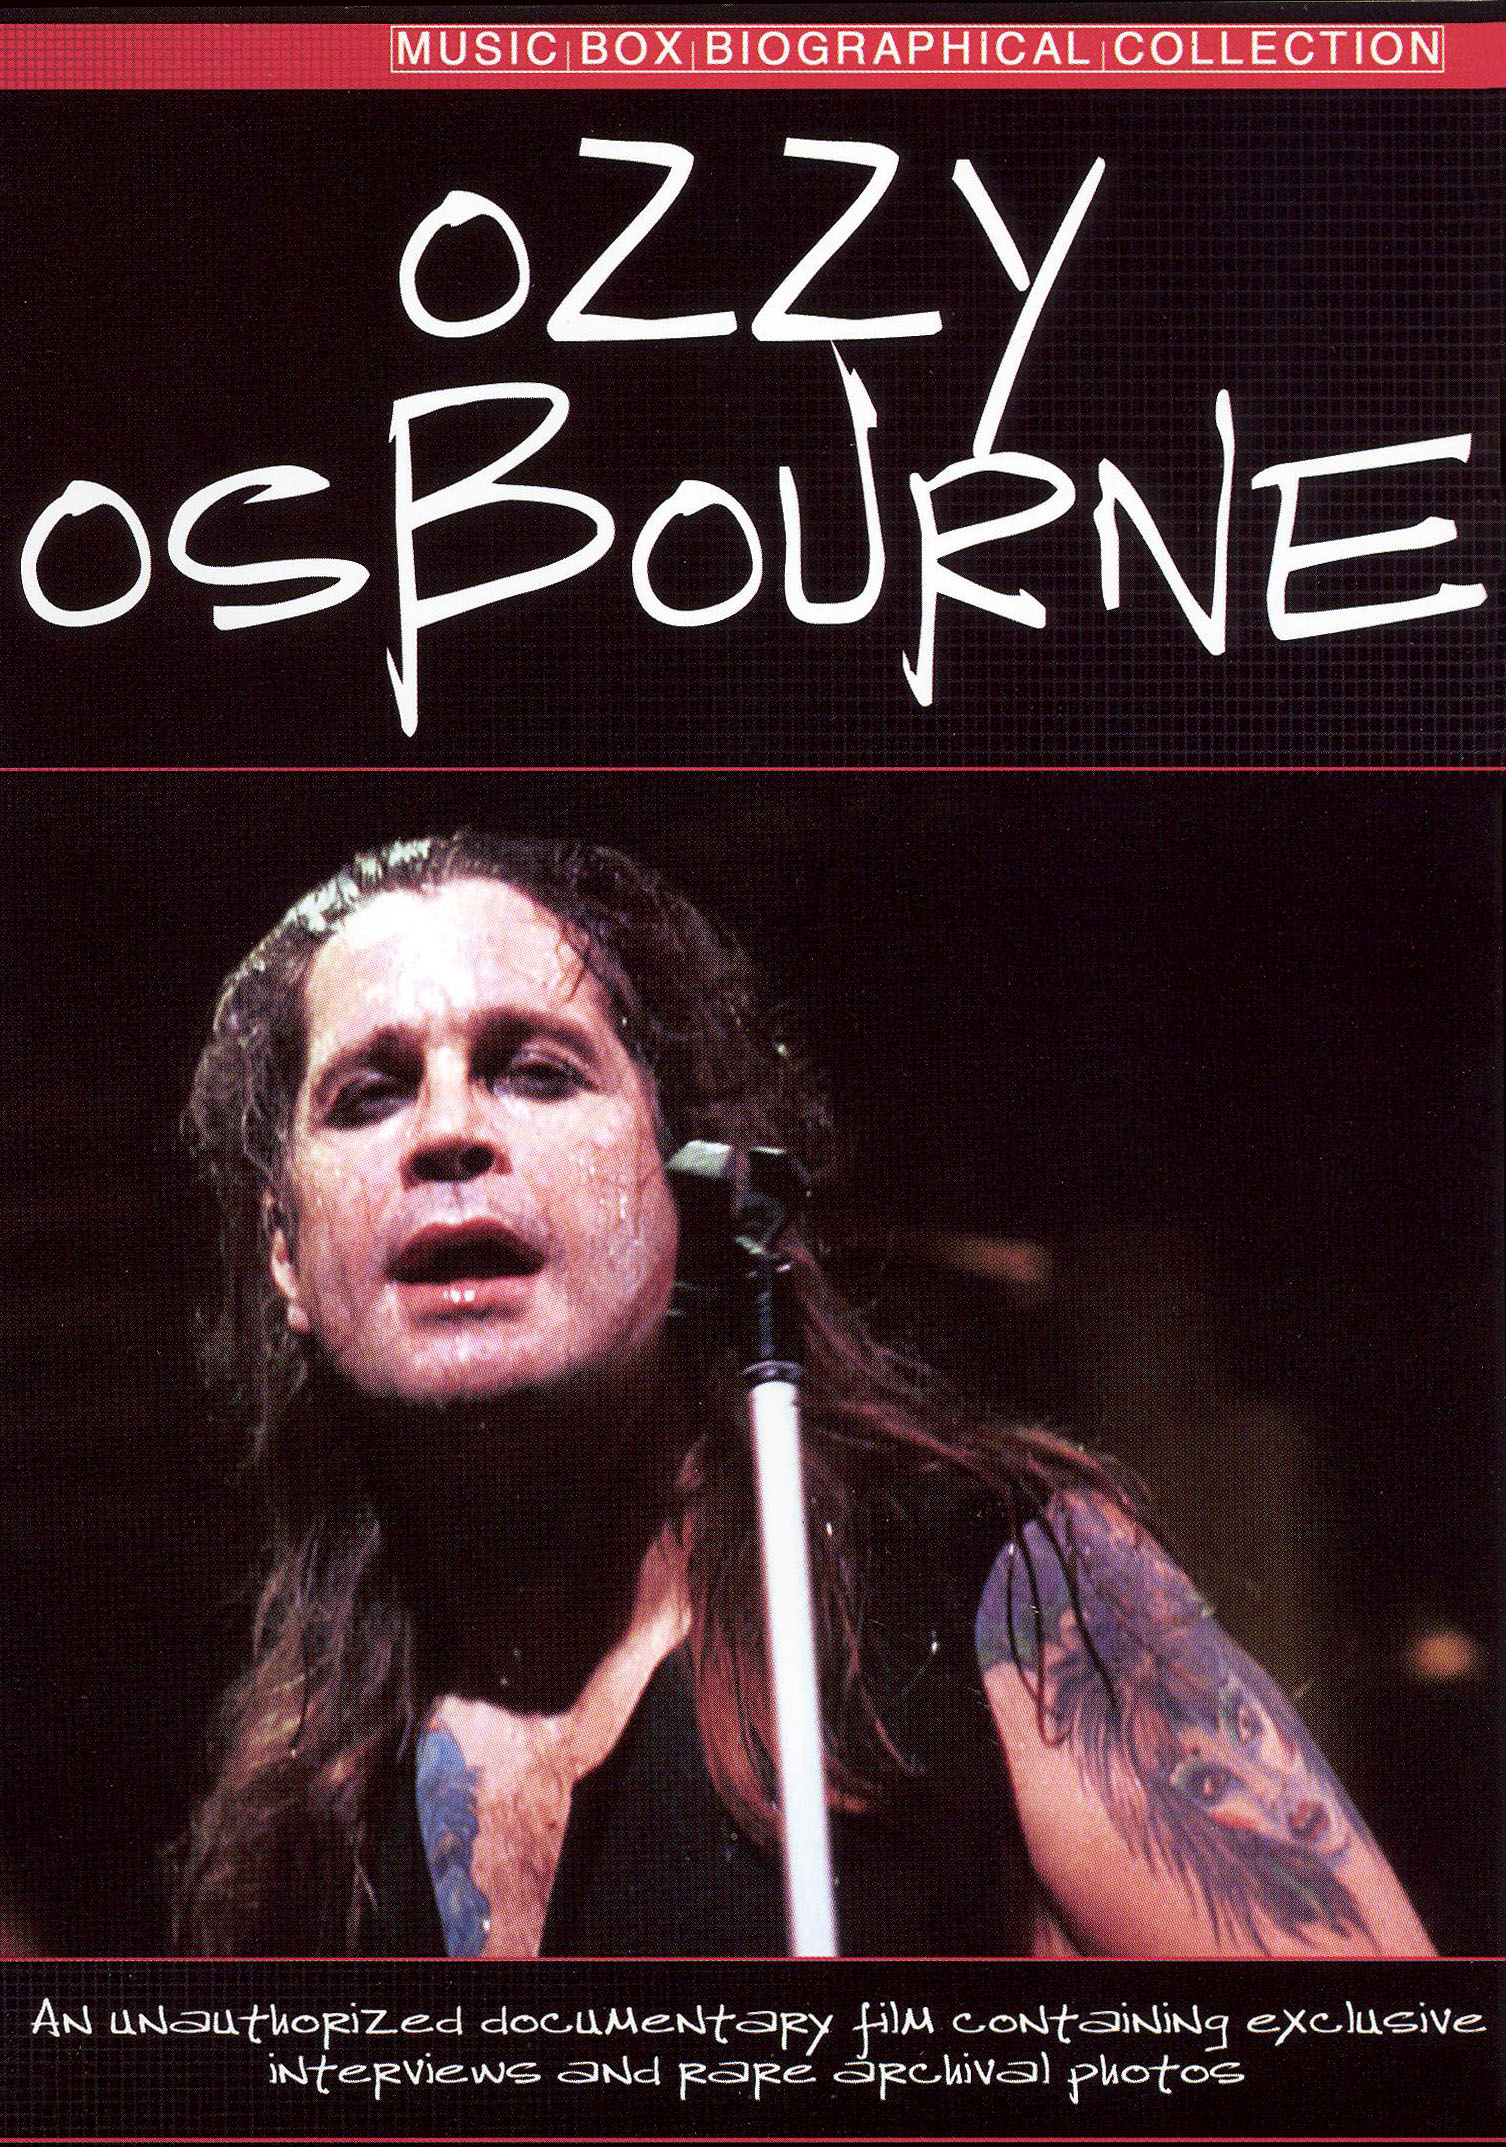 Music Box Biographical Collection: Ozzy Osbourne